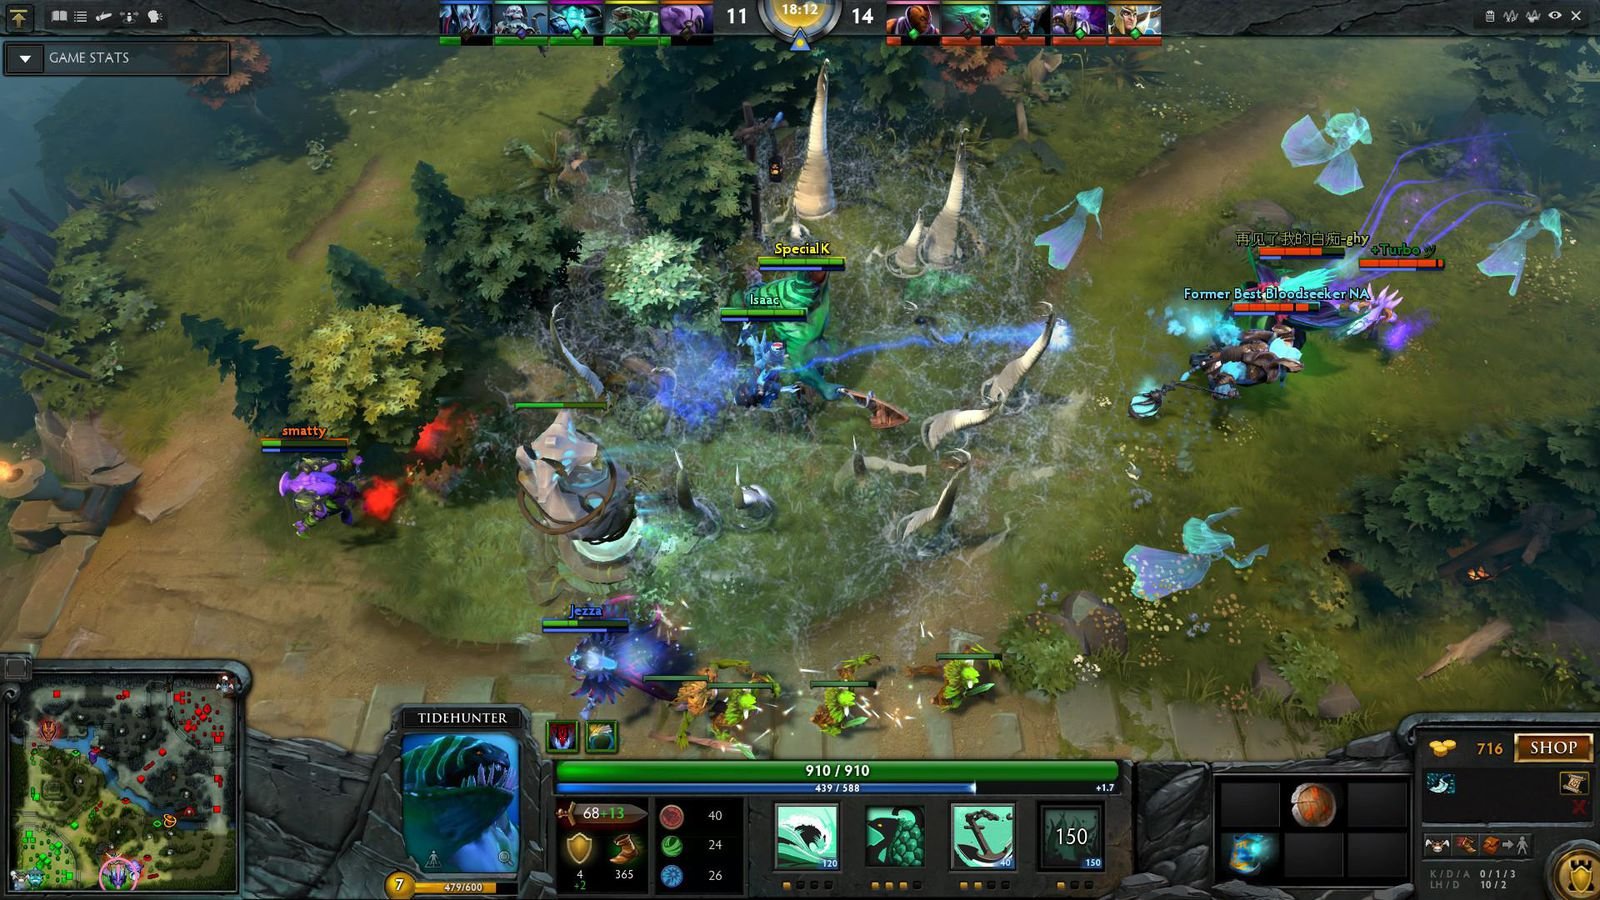 Dota 2 Is Getting A Steam VR Spectator Mode According To